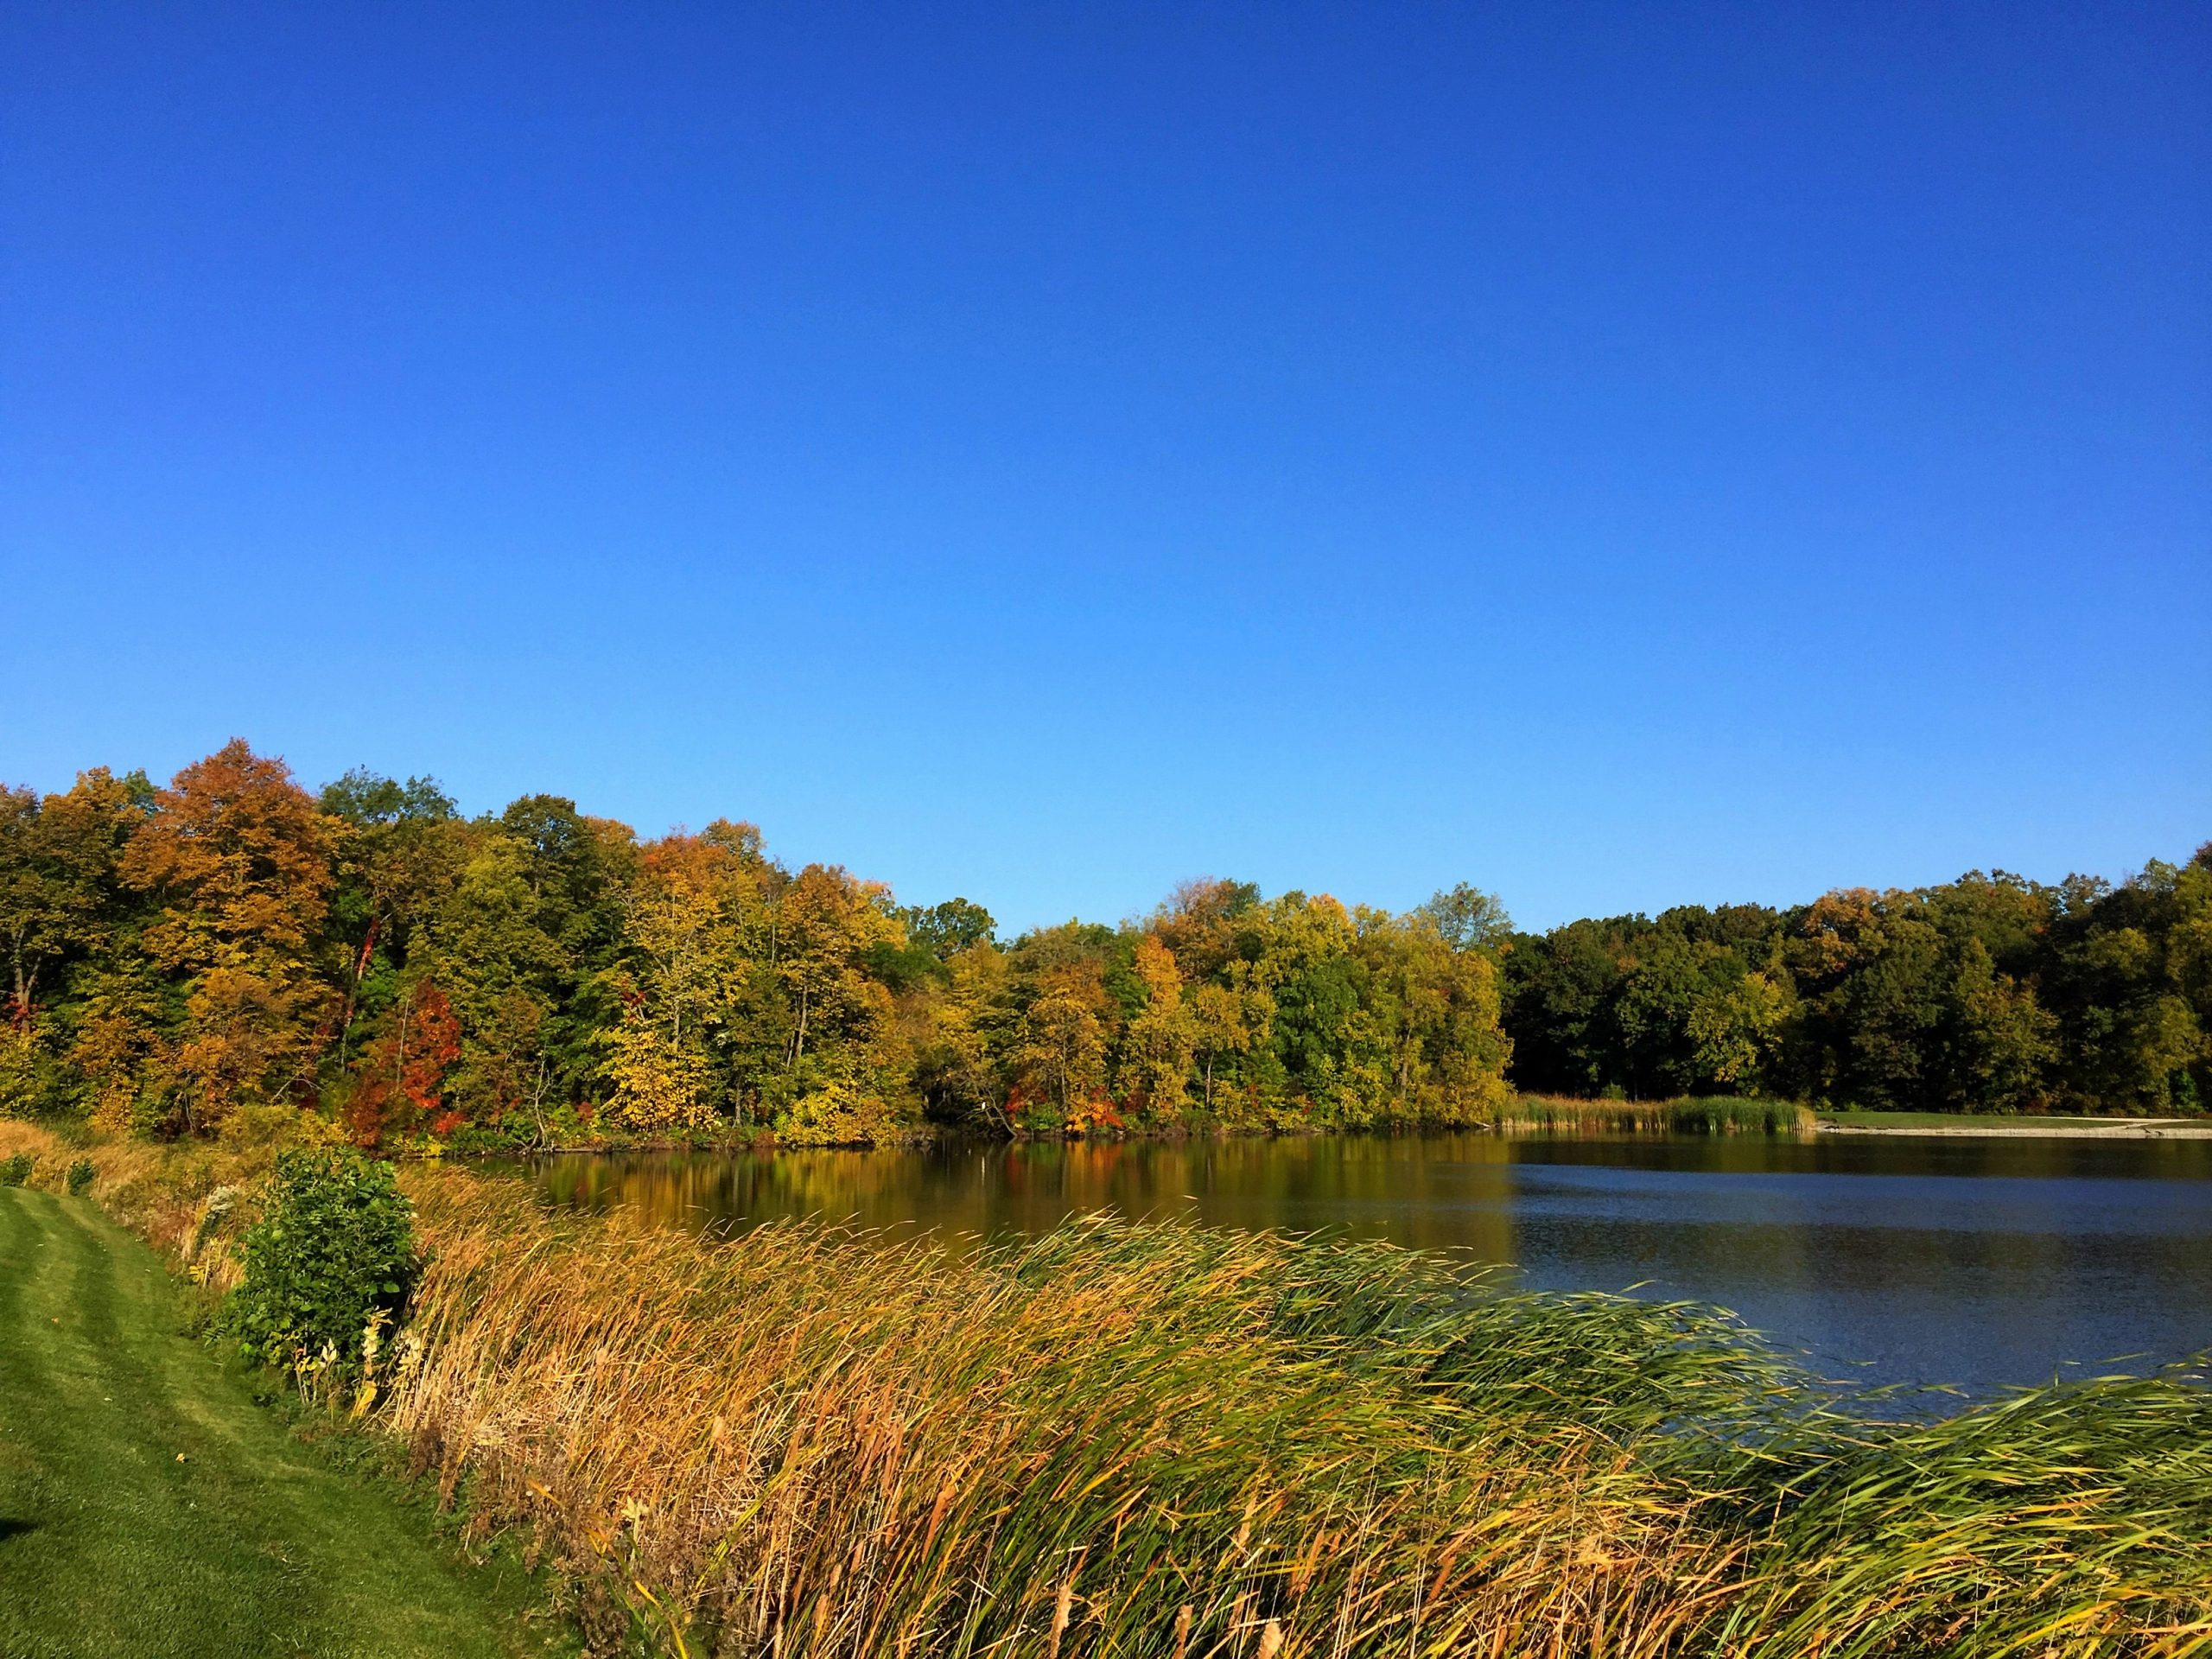 Bob Ross would be very happy to paint this scene, captured on Oct. 7. nature, landscape, sky, pond, water, autumn, fall, woods, tree Photo: Albert Dyer